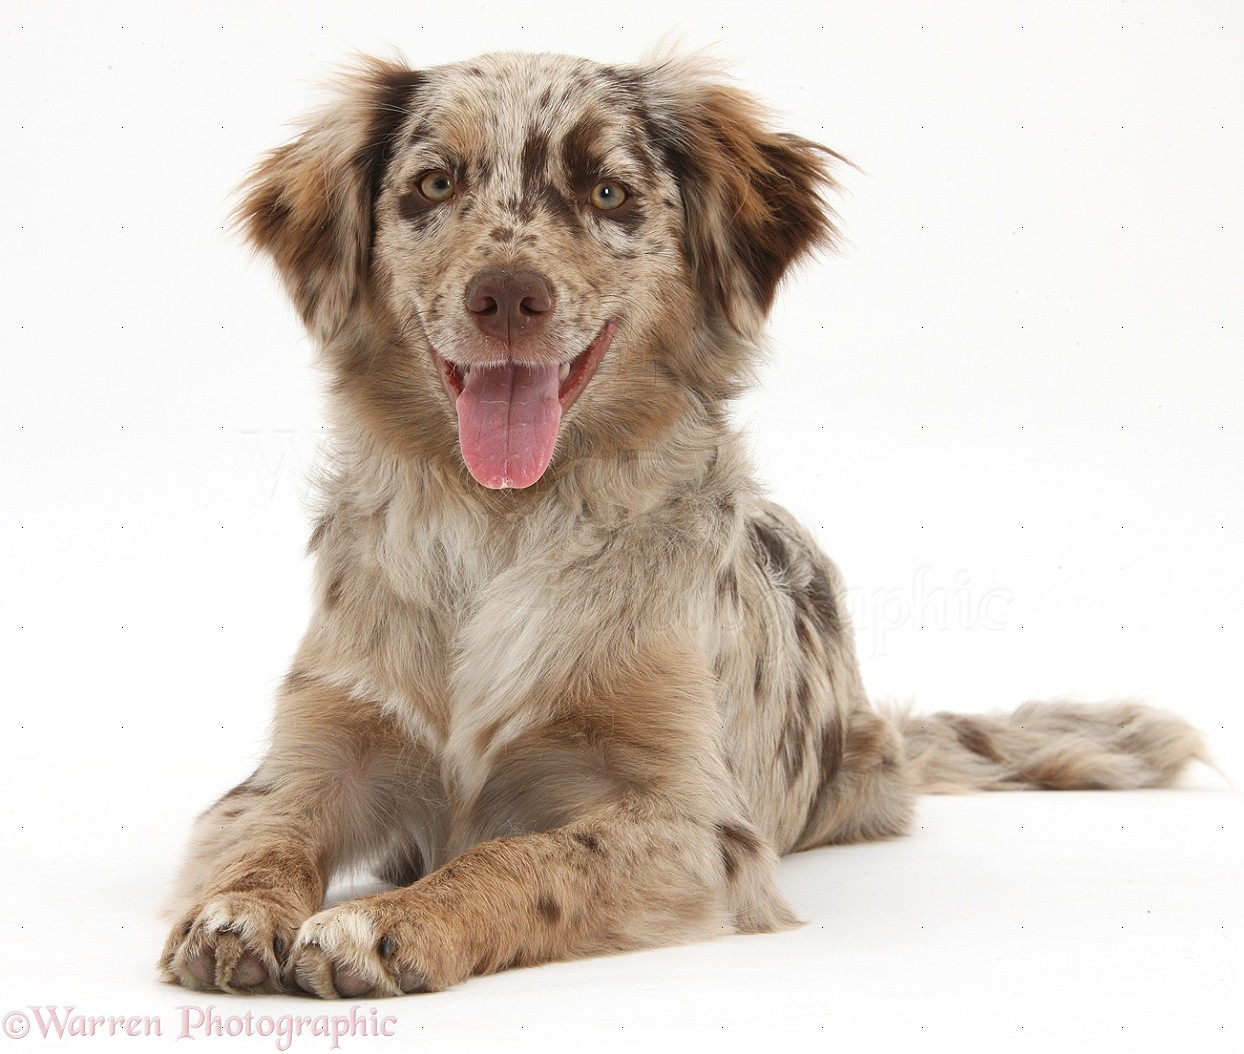 dog red merle mini american shepherd photo wp38455